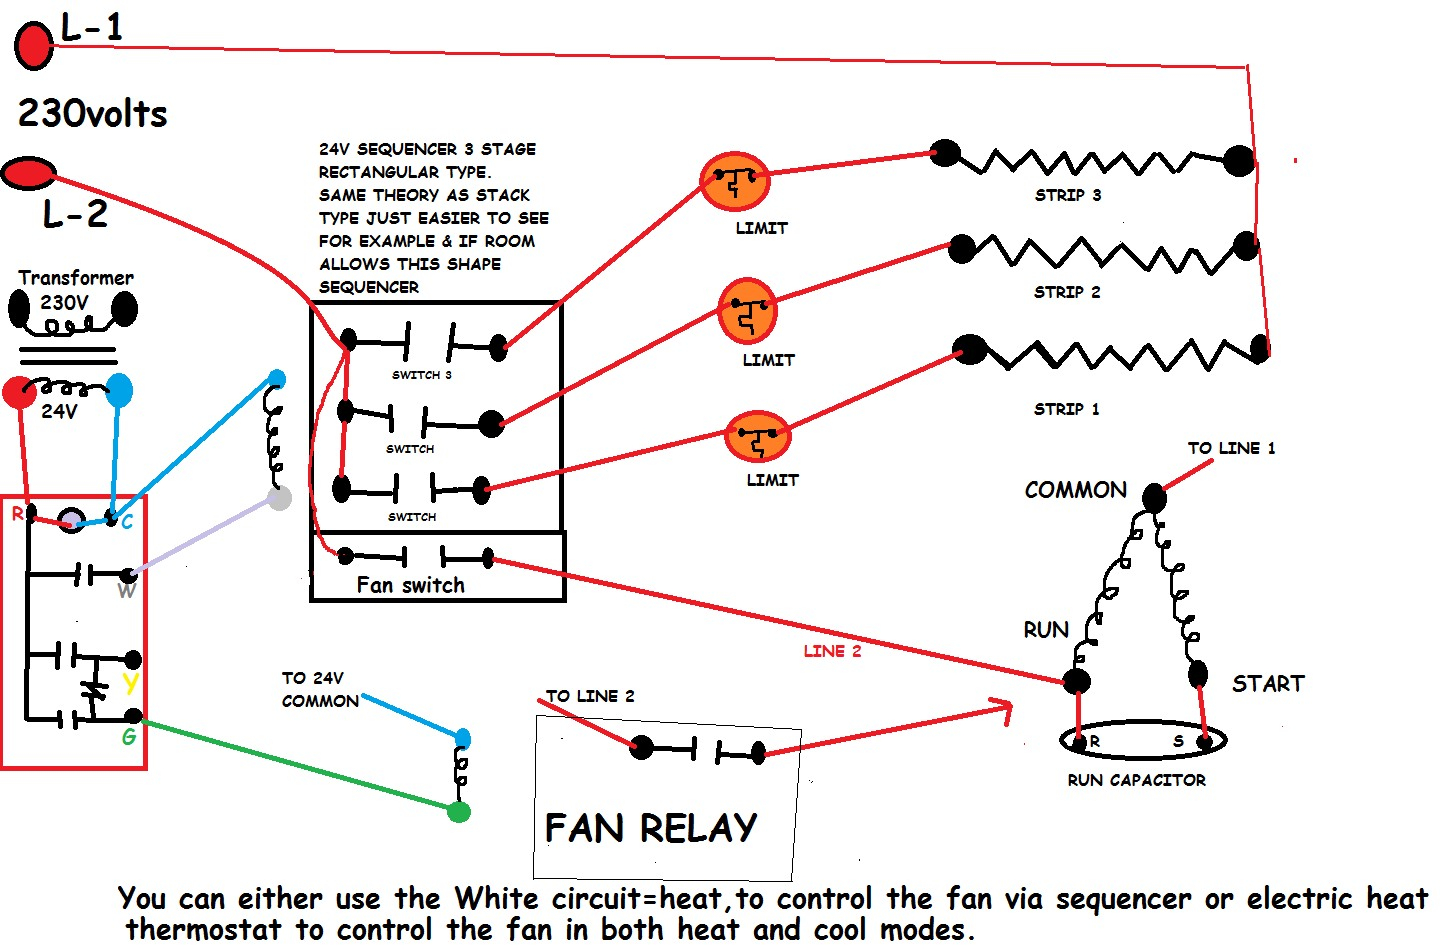 Furnace Relay Wiring - 9.xeghaqqt.petportal.info • on furnace controls diagram, furnace schematic, furnace heater diagram, furnace fan belt, furnace maintenance diagram, furnace hvac diagram, furnace ductwork diagram, furnace plumbing diagram, furnace transformer diagram, furnace thermostat diagram, furnace filter diagram, gas furnace diagram, furnace switch, furnace relay diagram, furnace motor diagram, furnace repair, furnace wiring symbols, furnace fan diagram,